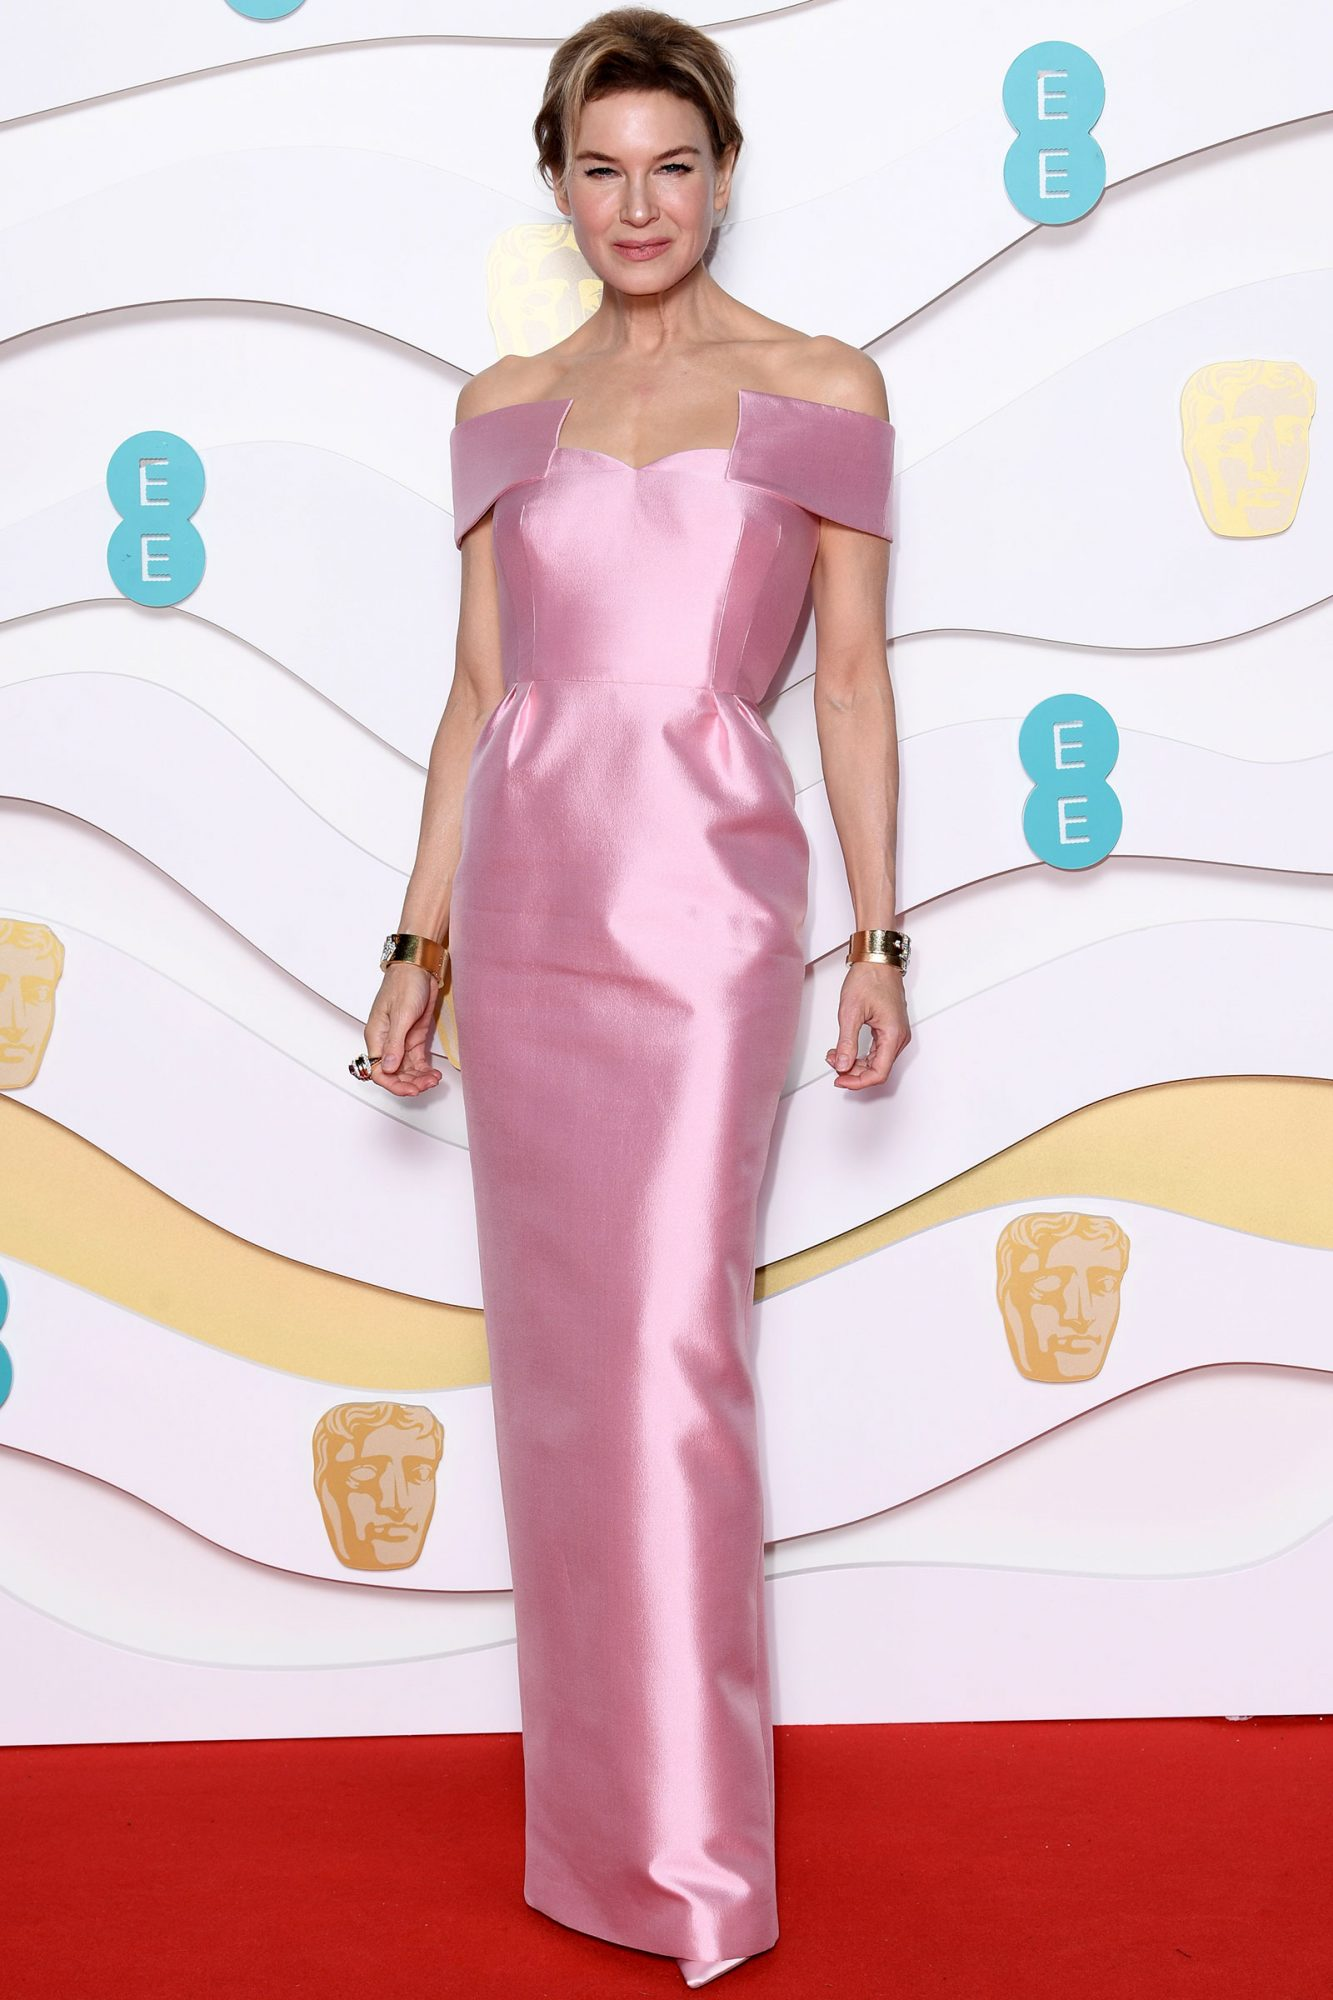 73rd British Academy Film Awards, Arrivals, Fashion Highlights, Royal Albert Hall, London, UK - 02 Feb 2020